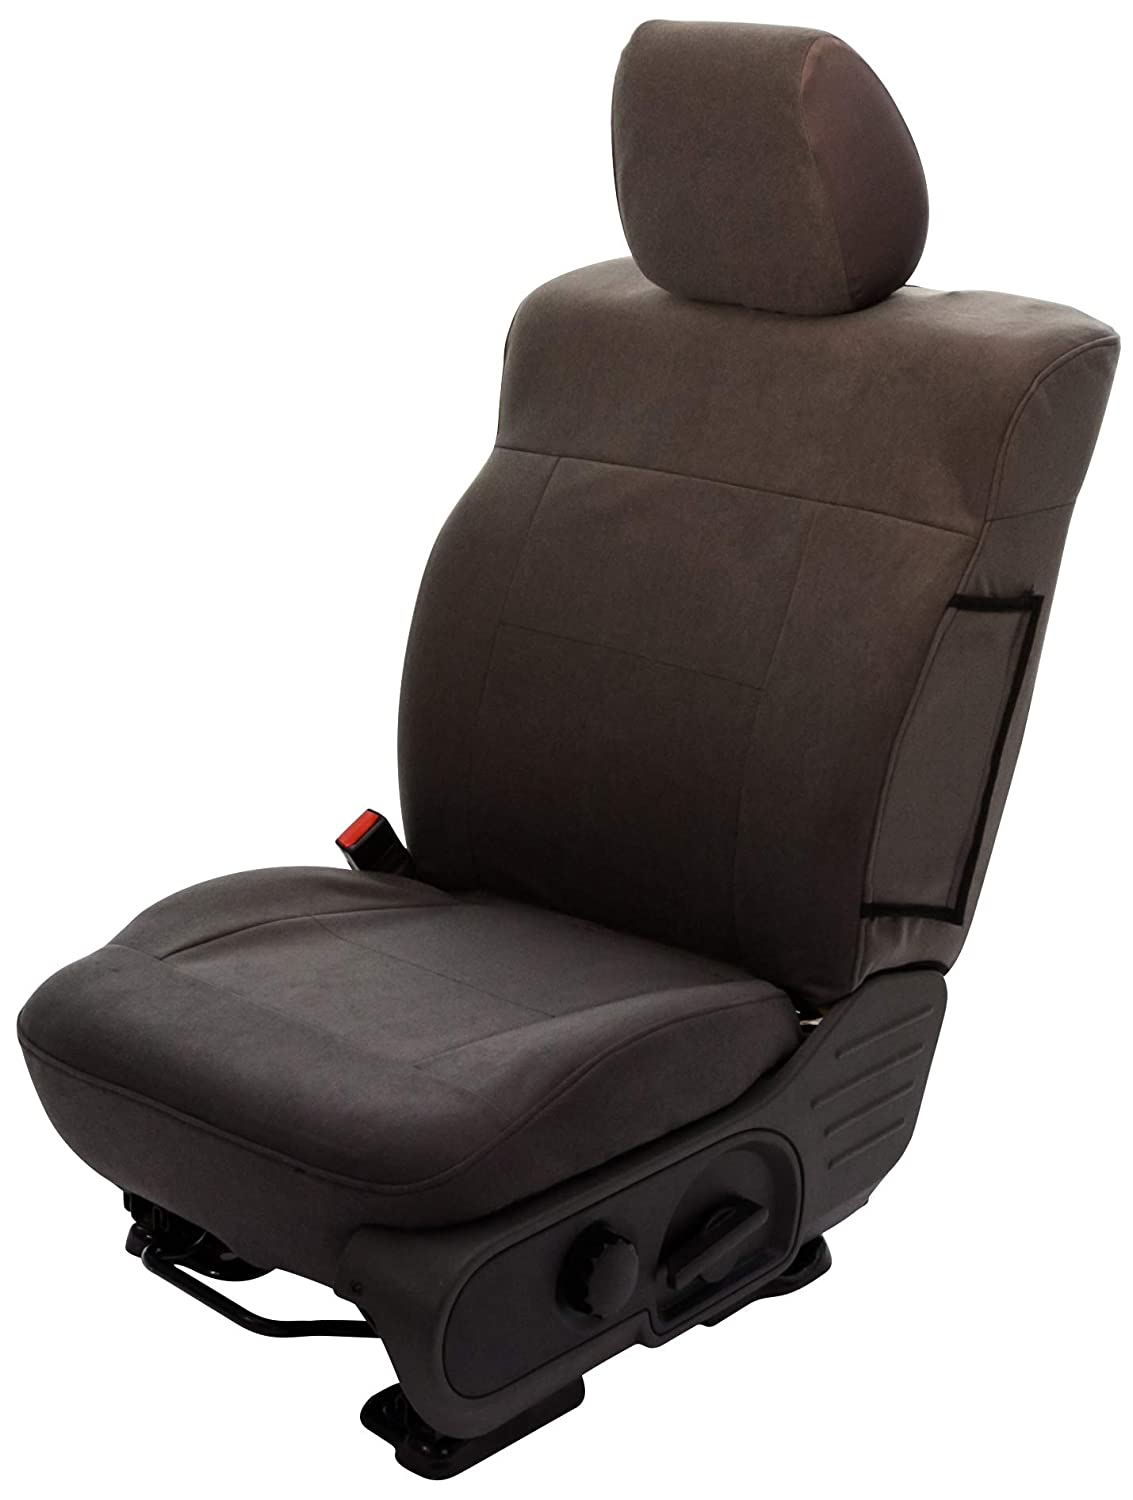 Saddleman S 219916-14 Gray Custom Made Rear Bench with Adjustable headrests Seat Covers